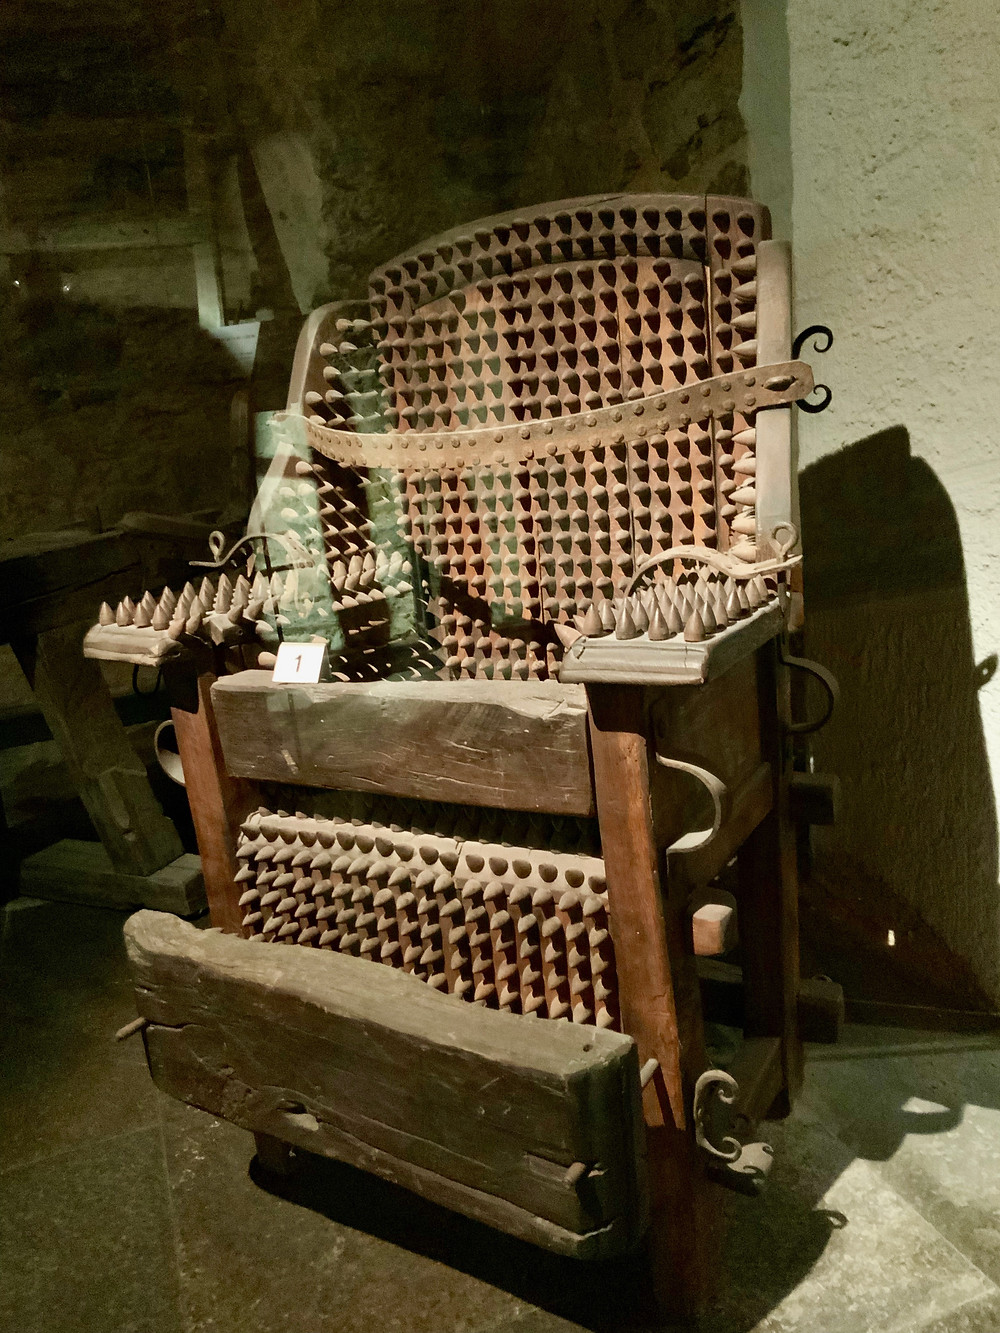 a spikey torture chair in the Rothenburg medieval crime museum